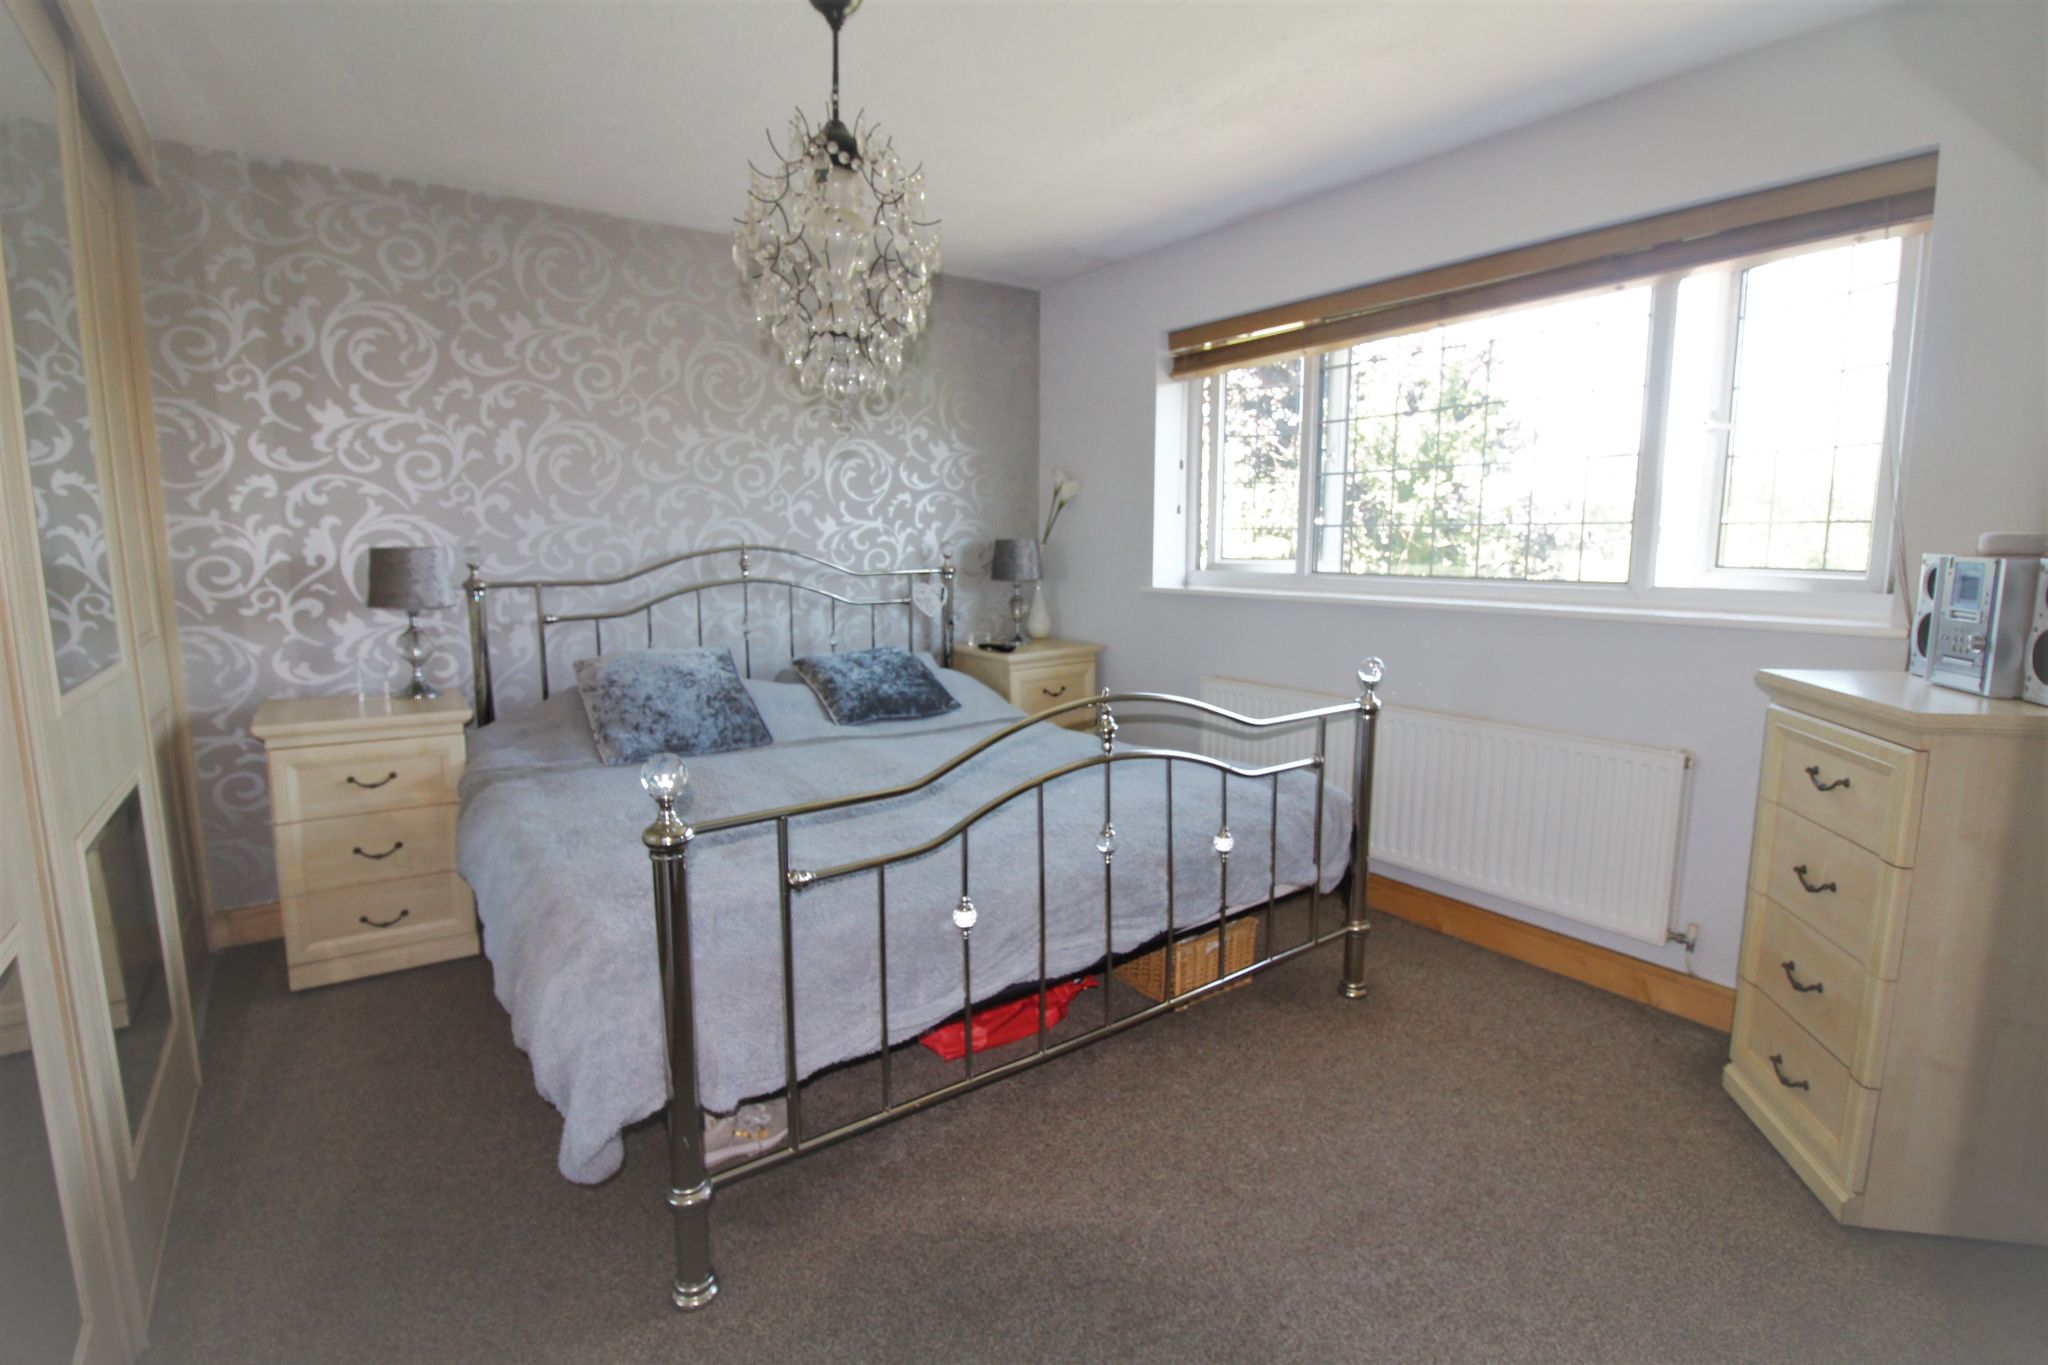 6 bedroom detached house For Sale in Solihull - Photograph 10.